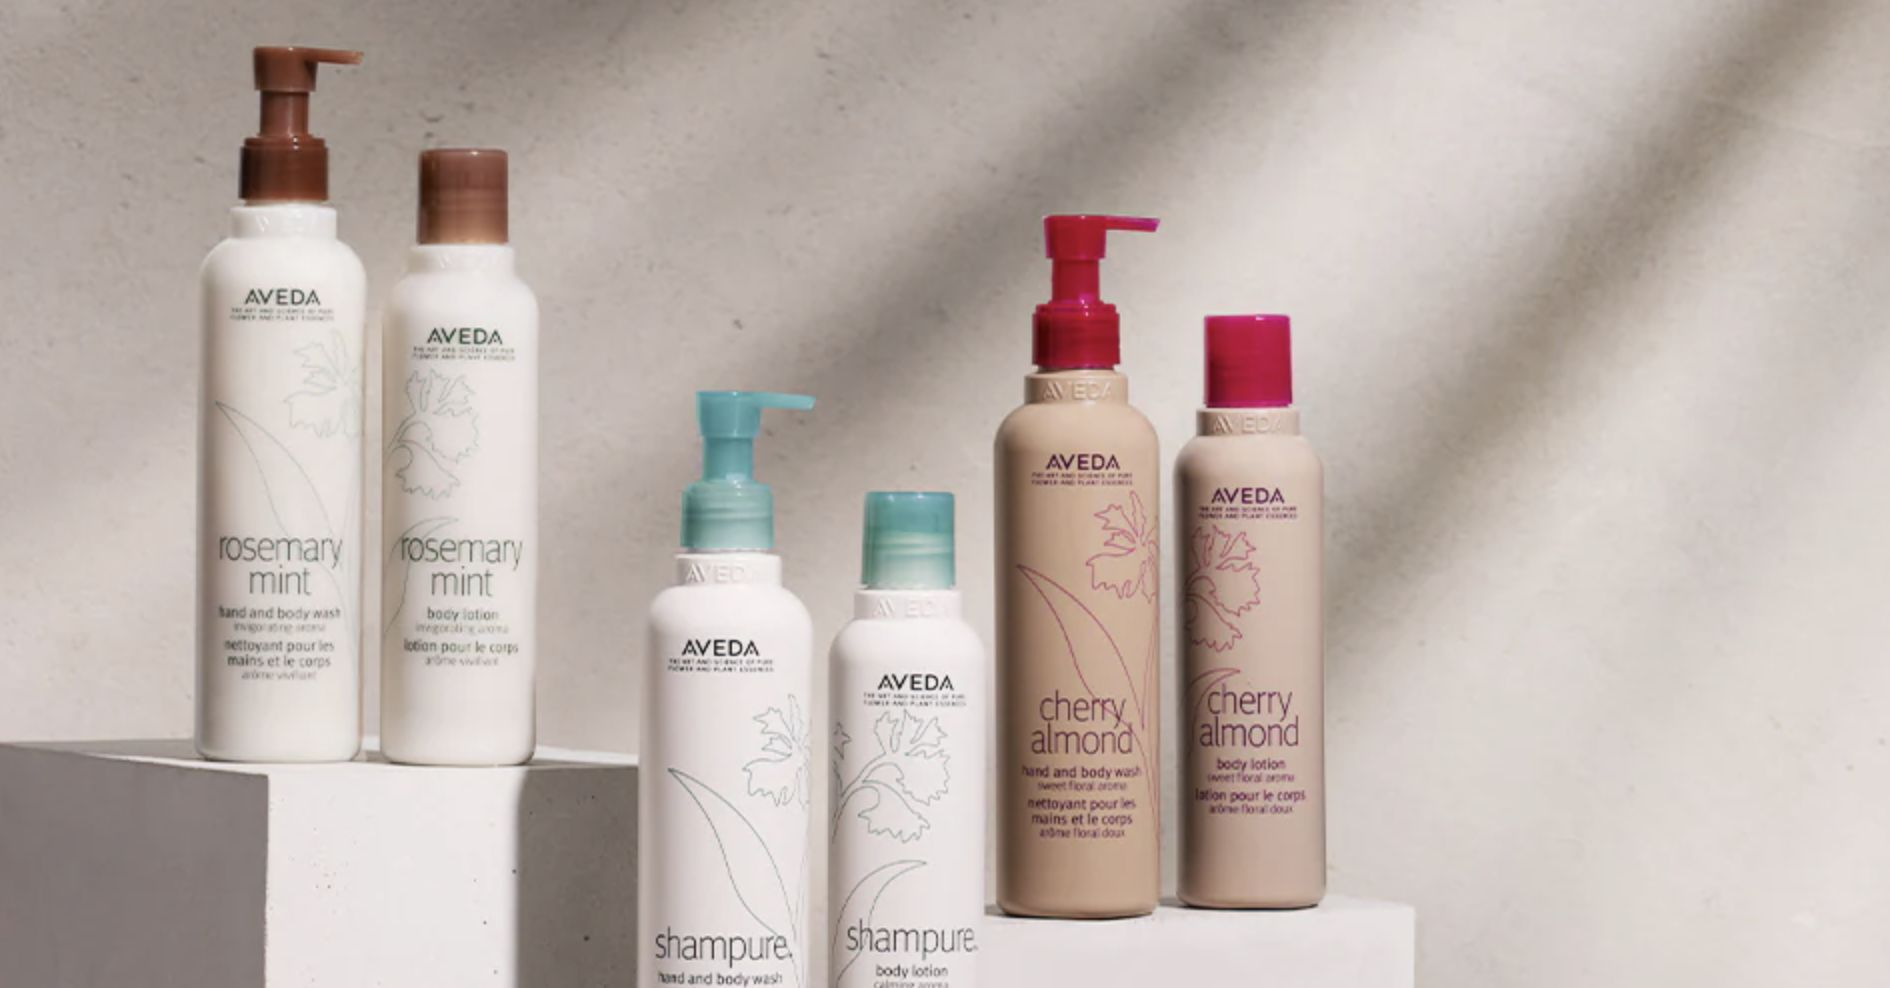 Aveda is having a big sale — so stock up while you can